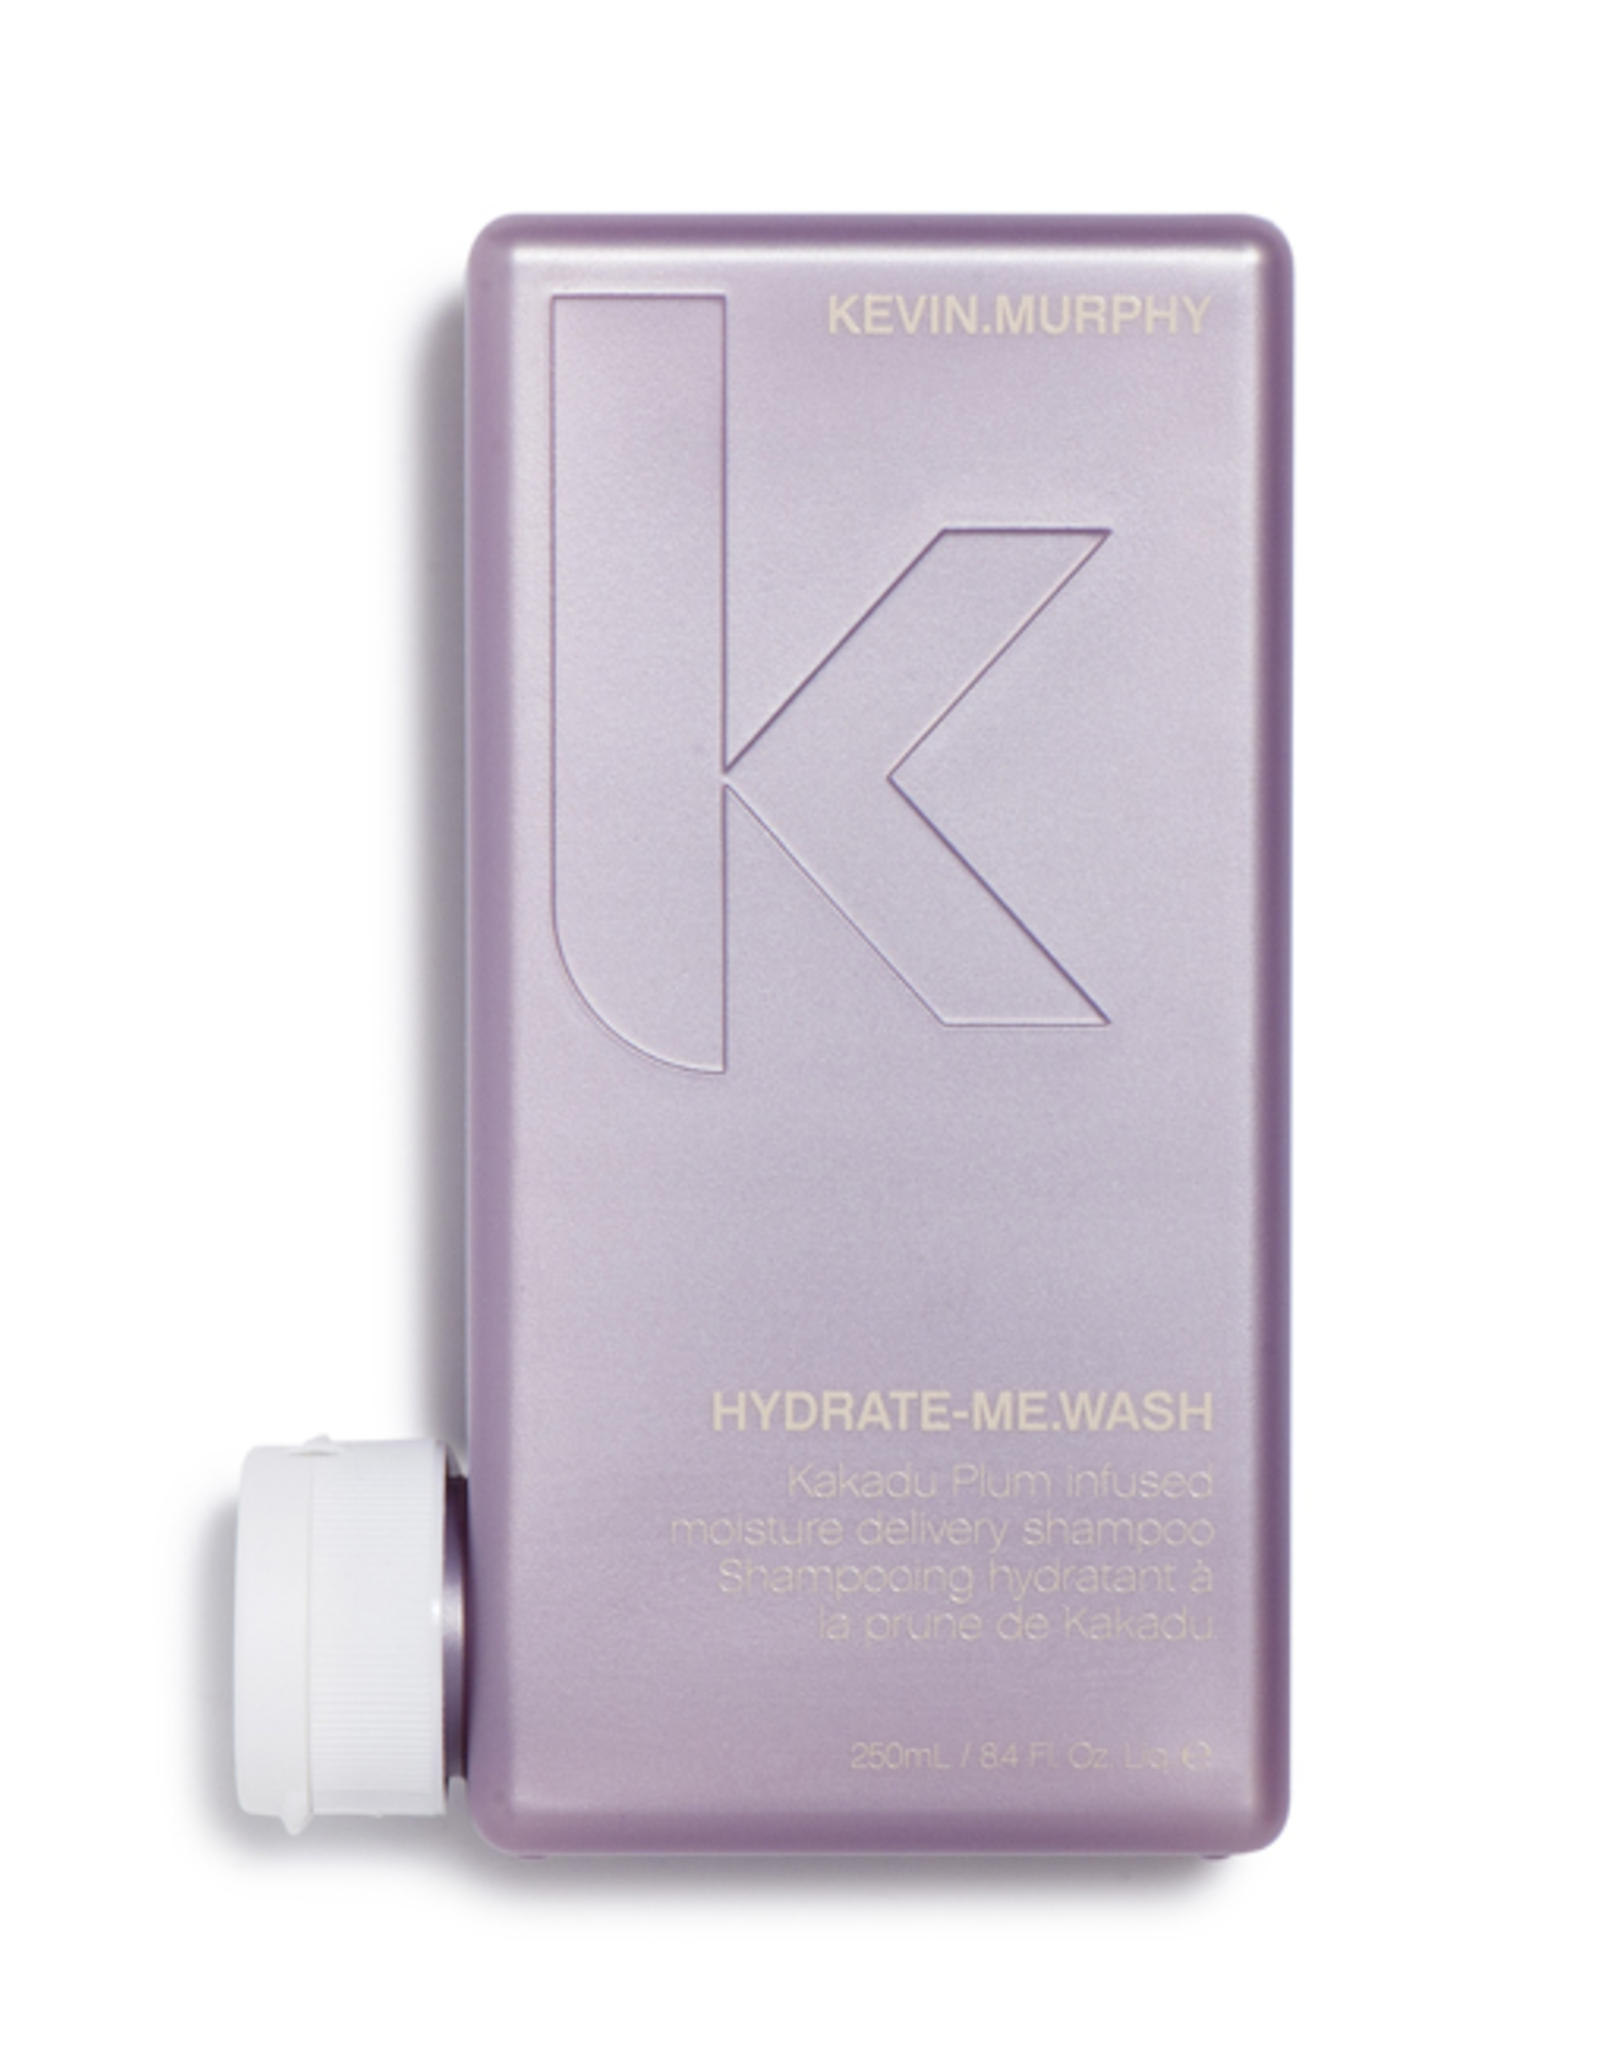 KEVIN.MURPHY Hydrate-Me.Wash (250 ml)